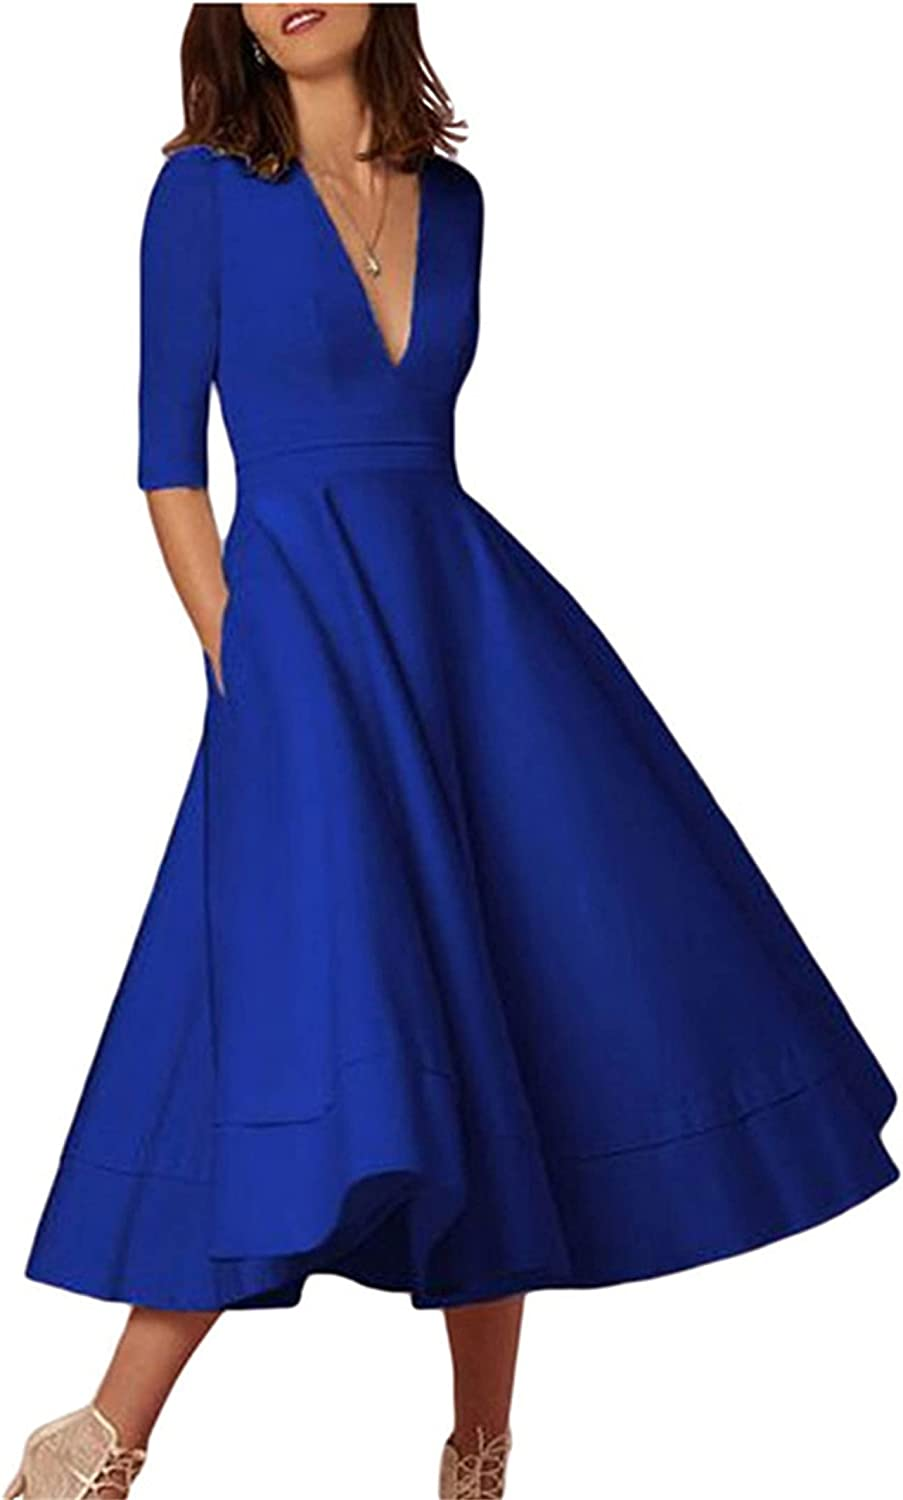 YMING Women Vintage Deep V Neck Cocktail Maxi Dress 3/4 Sleeve Pleated Swing Long Dress with Pockets